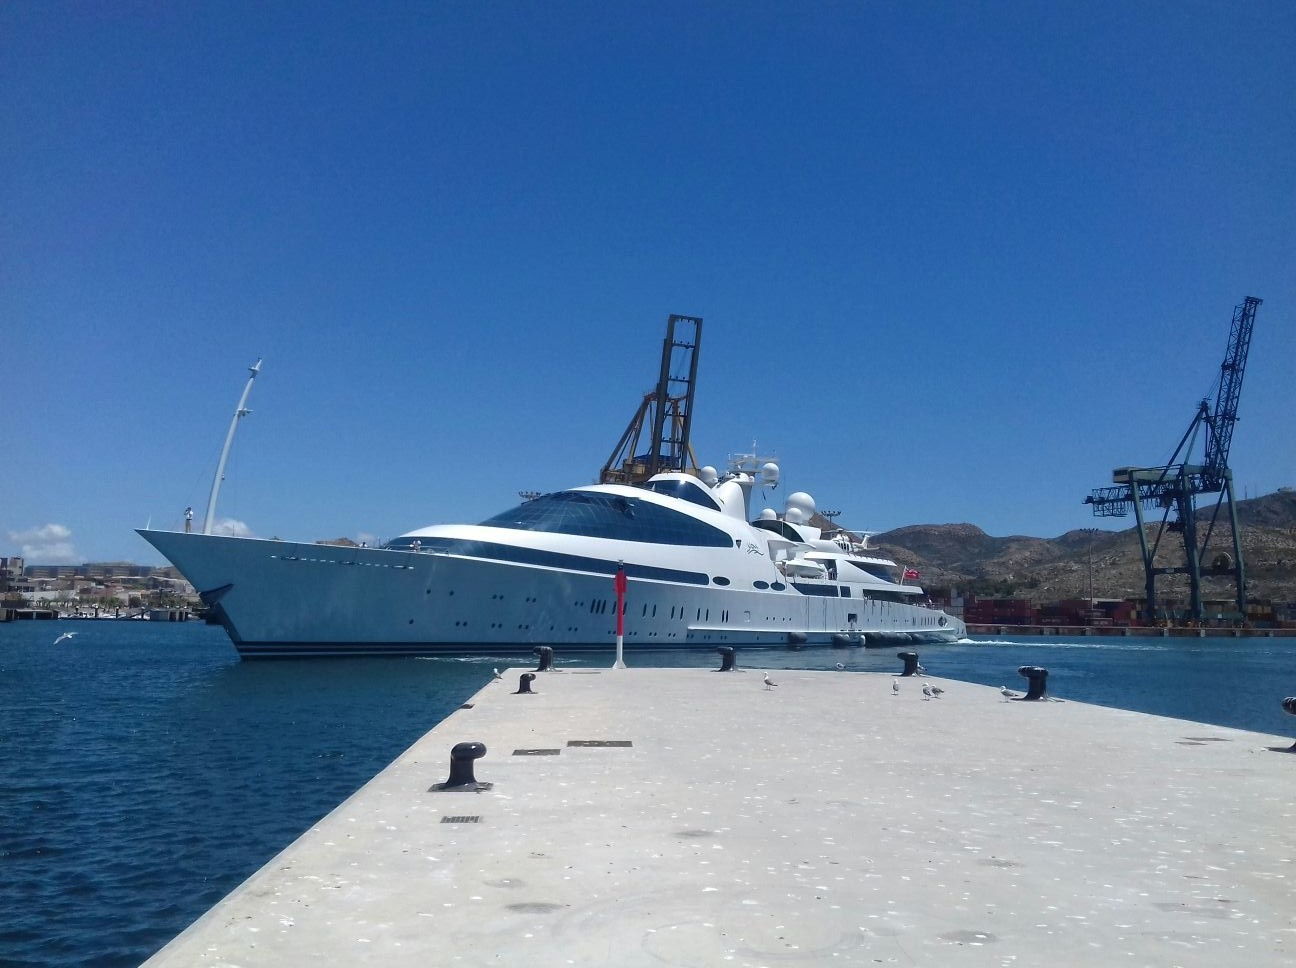 Motor yacht YAS berthed at Yacht Port Cartagena